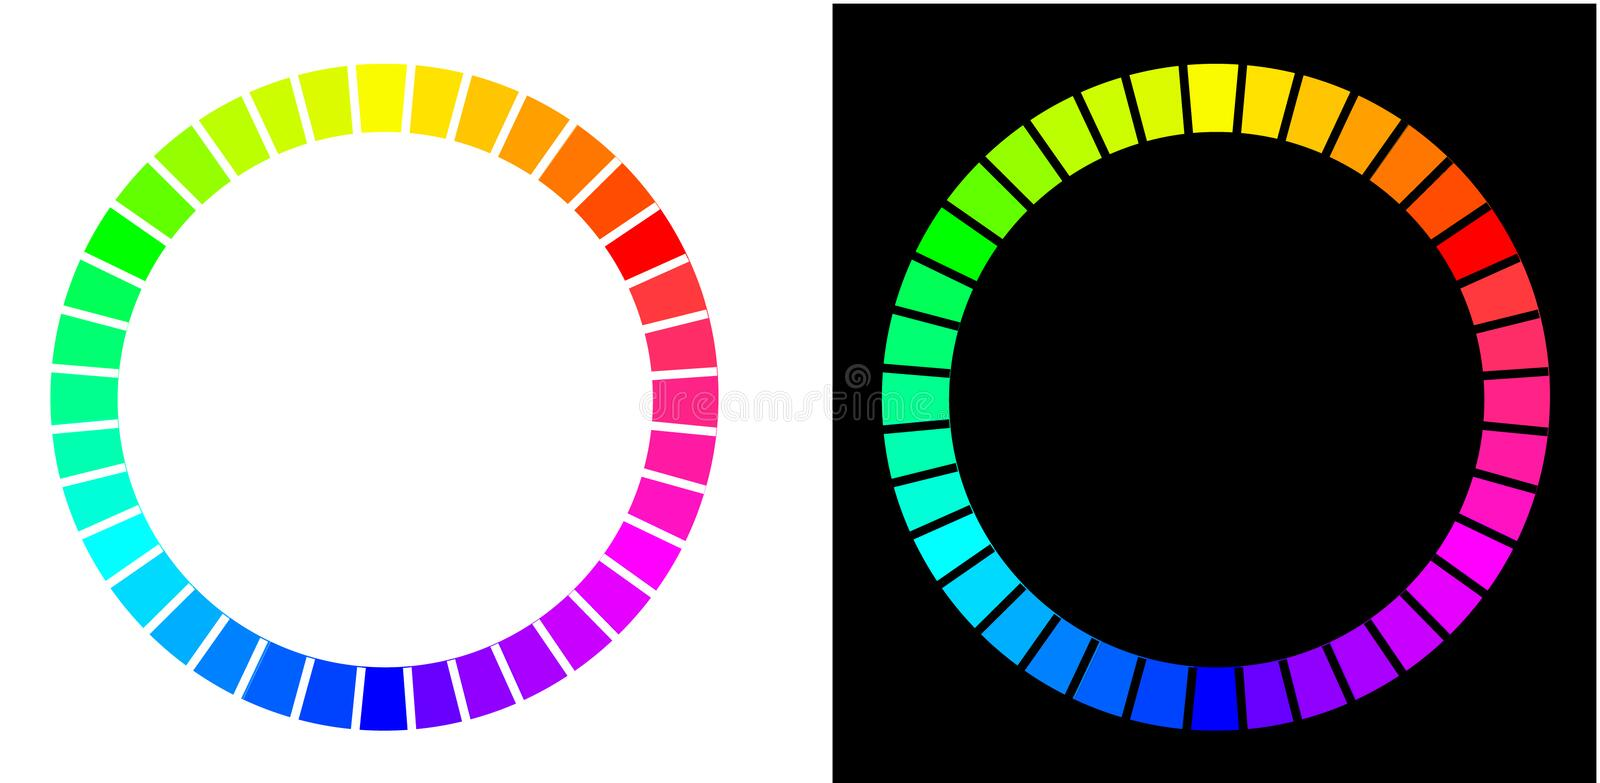 Two color circles royalty free illustration